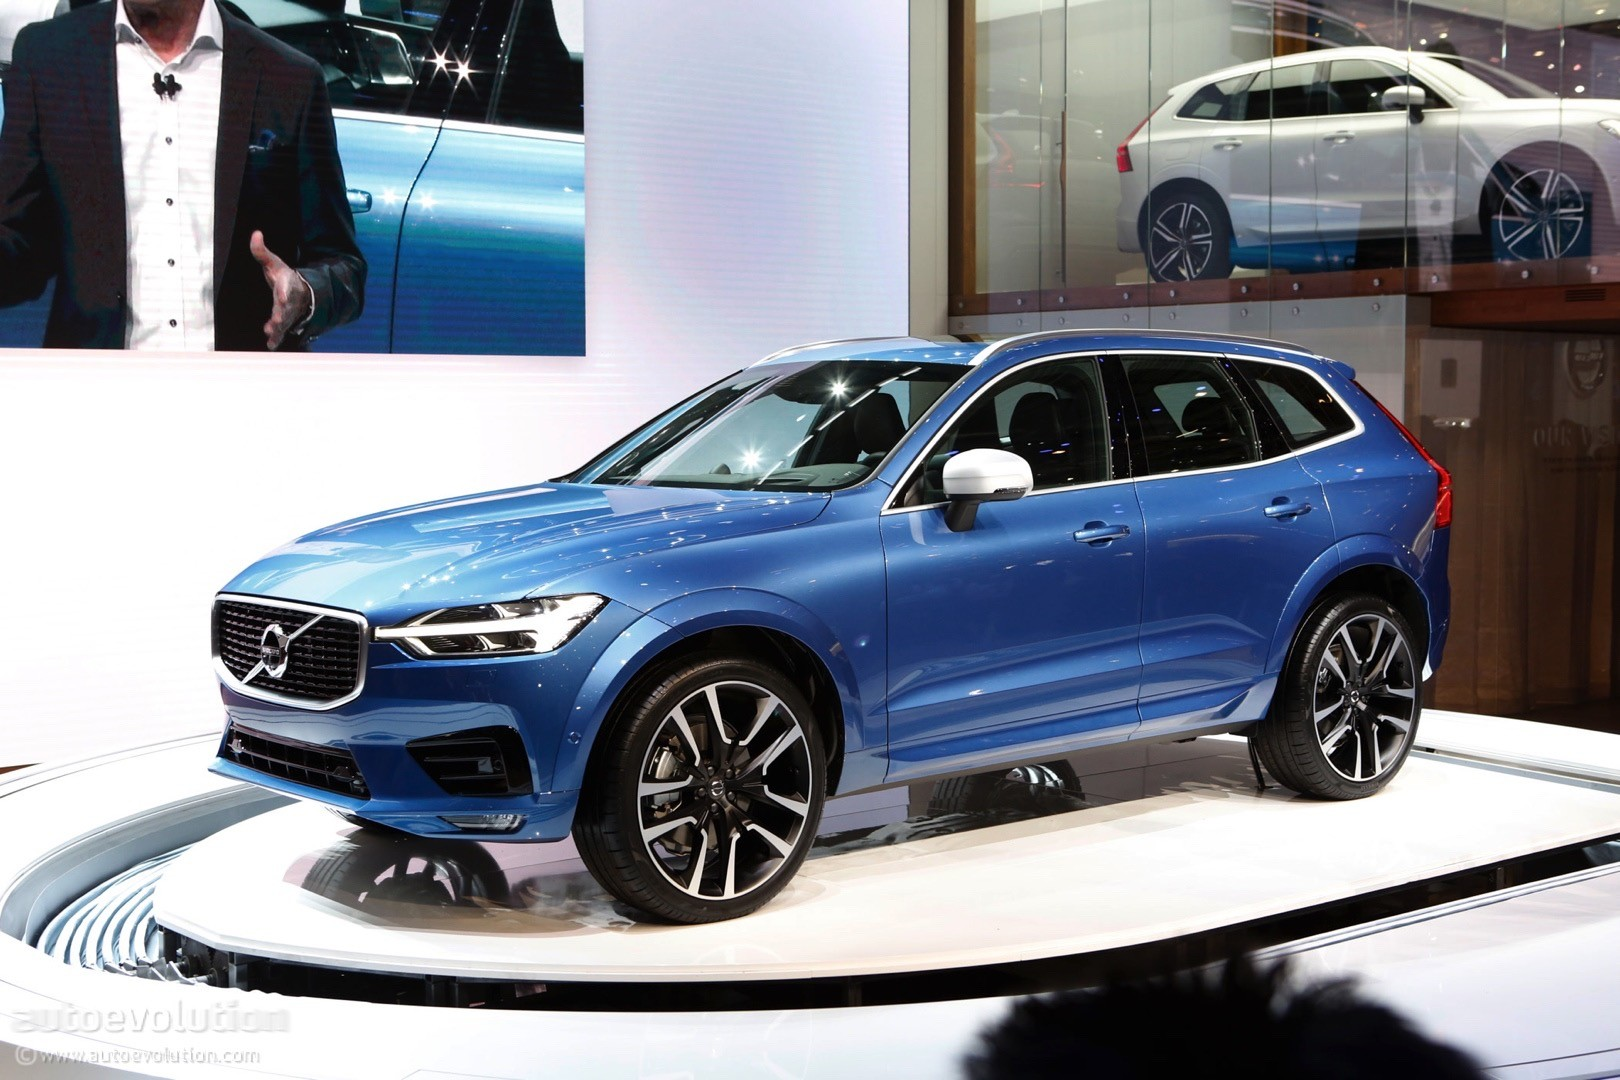 2018 Volvo Xc60 Is The Sexiest Crossover Suv In Geneva